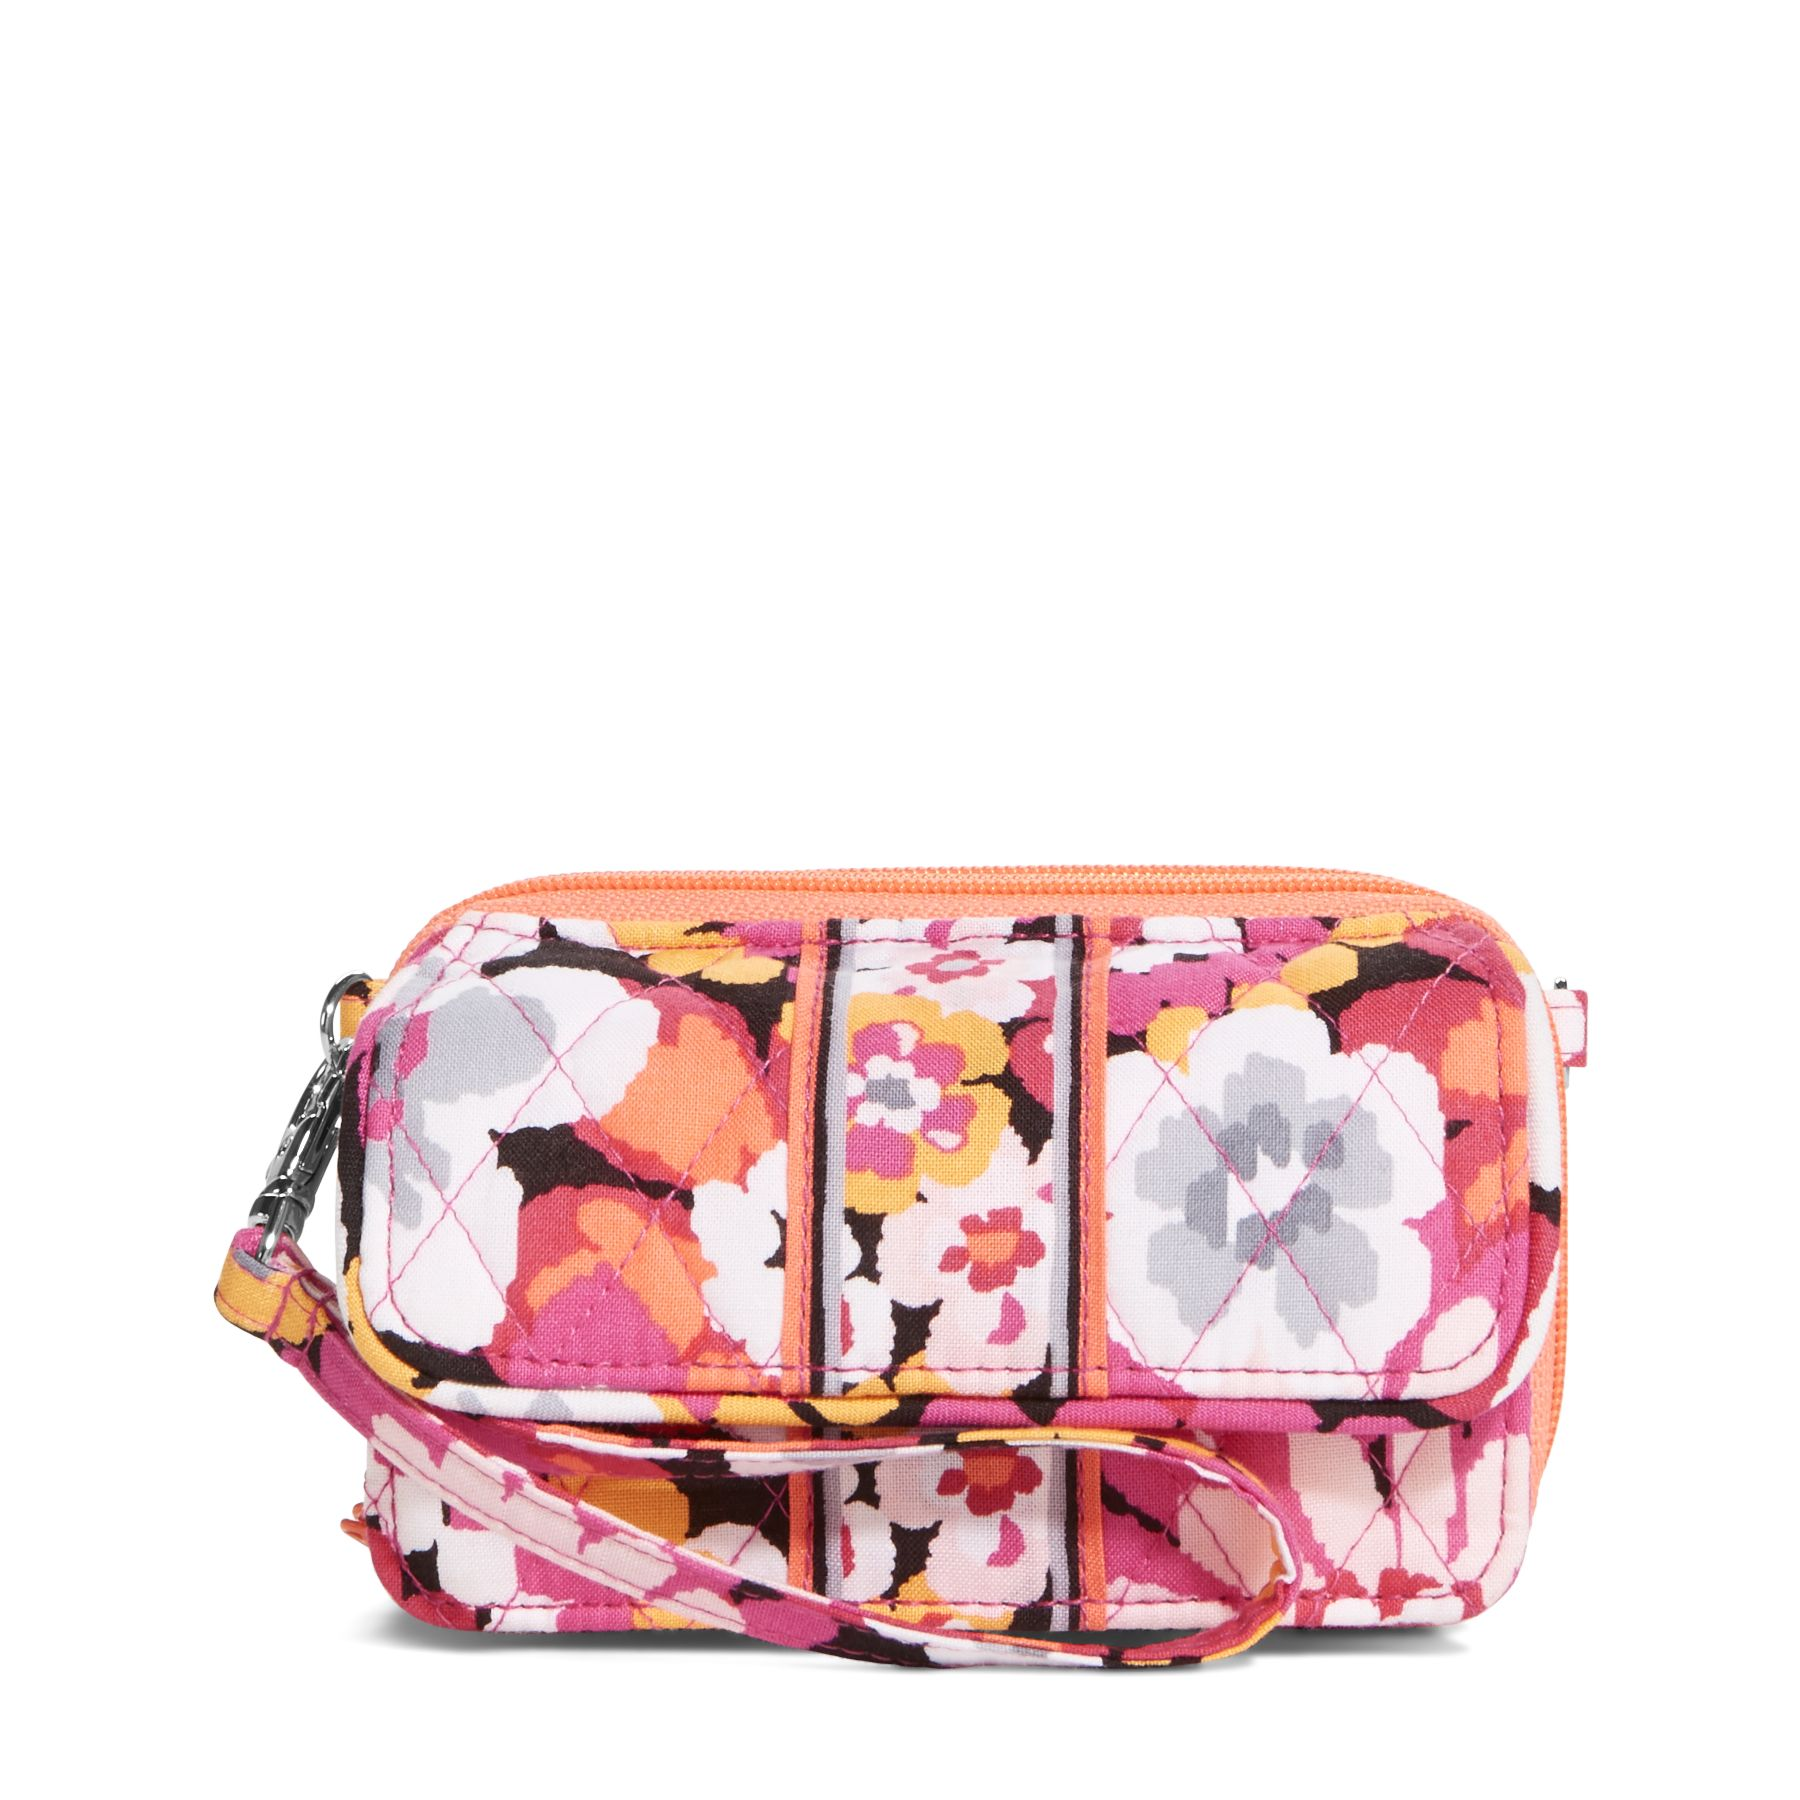 Vera Bradley All in One Crossbody and Wristlet in Pixie Blooms